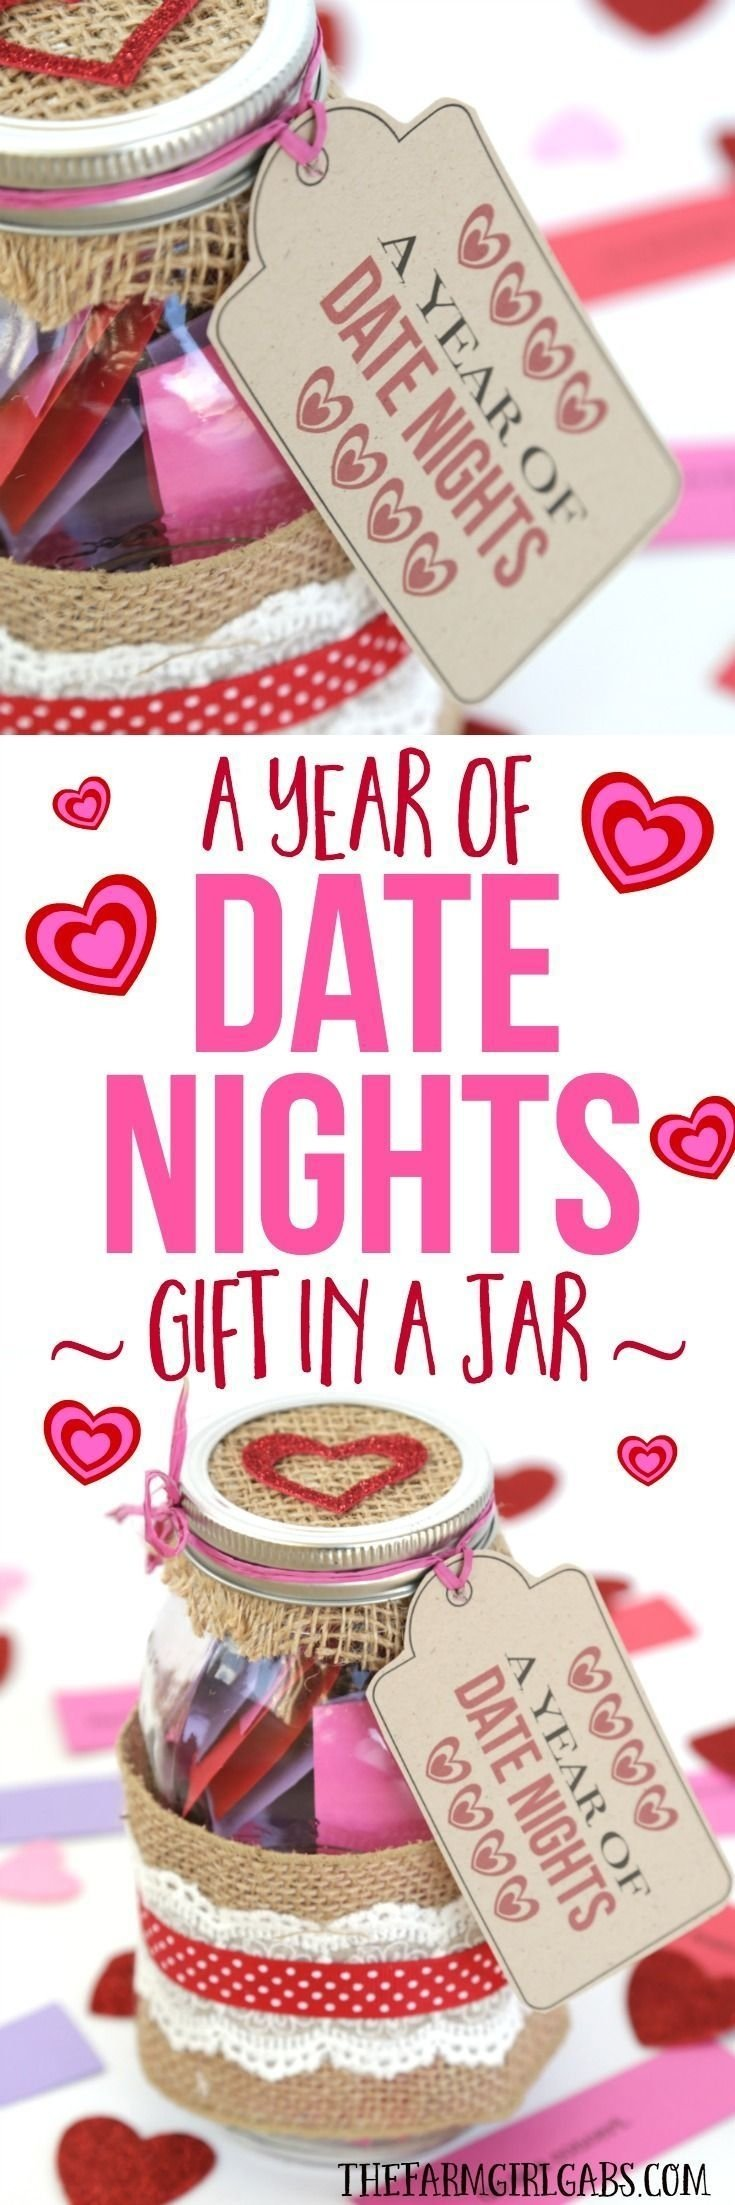 10 Famous Creative Date Ideas For Him 156 best date night marriage images on pinterest happy marriage 2020